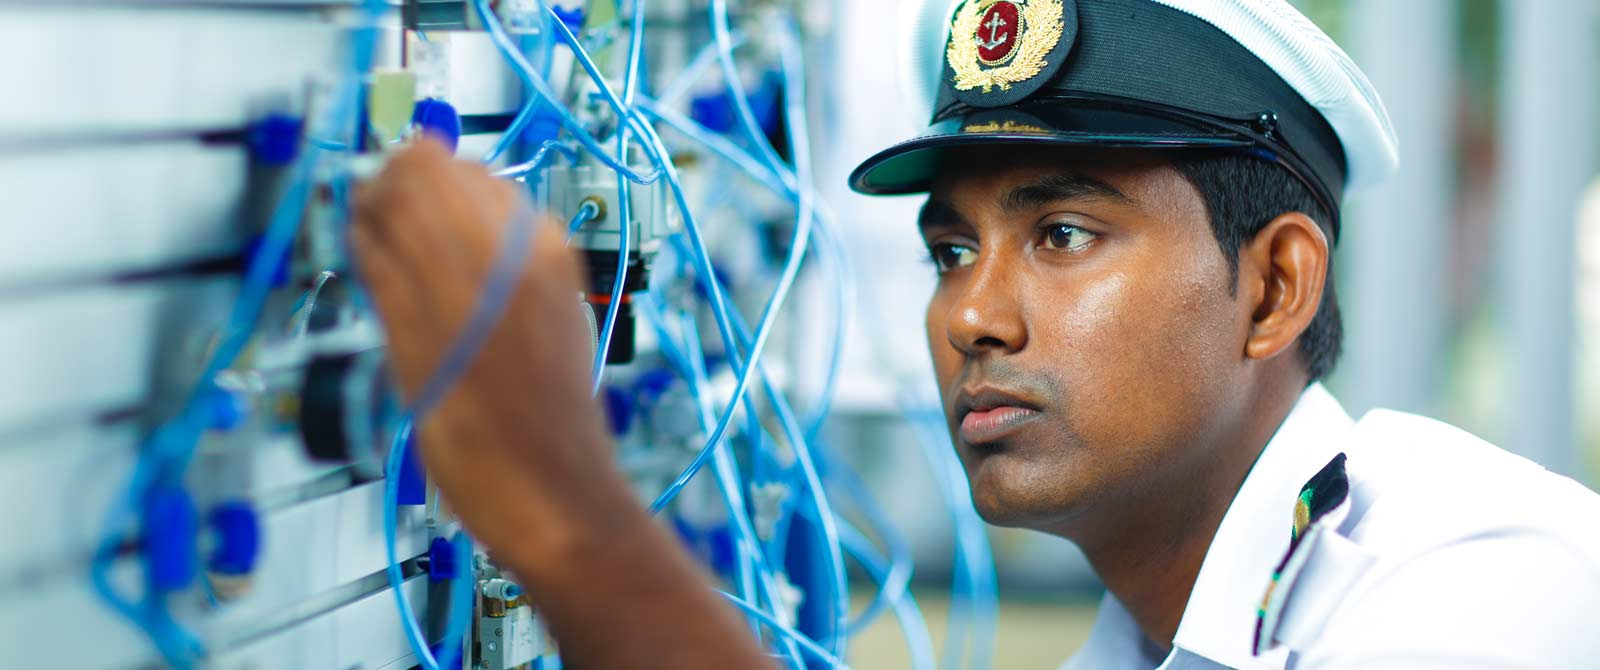 Electrical Courses In Sri Lanka Electrical Engineering